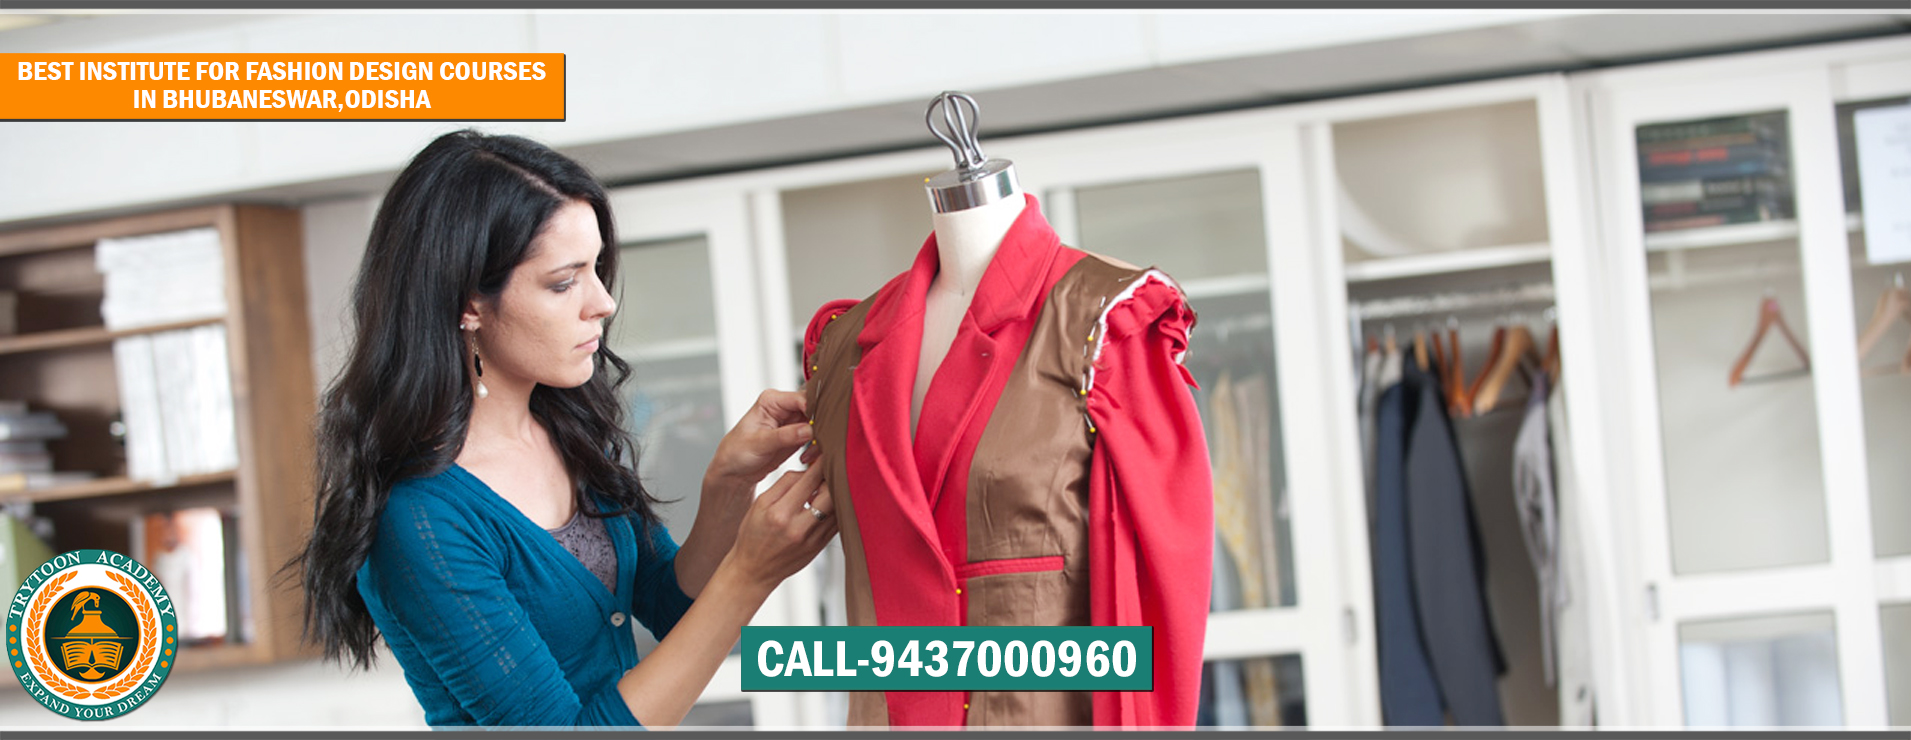 Admission Fashion Design Courses in best fashion design college in bhubaneswar odisha